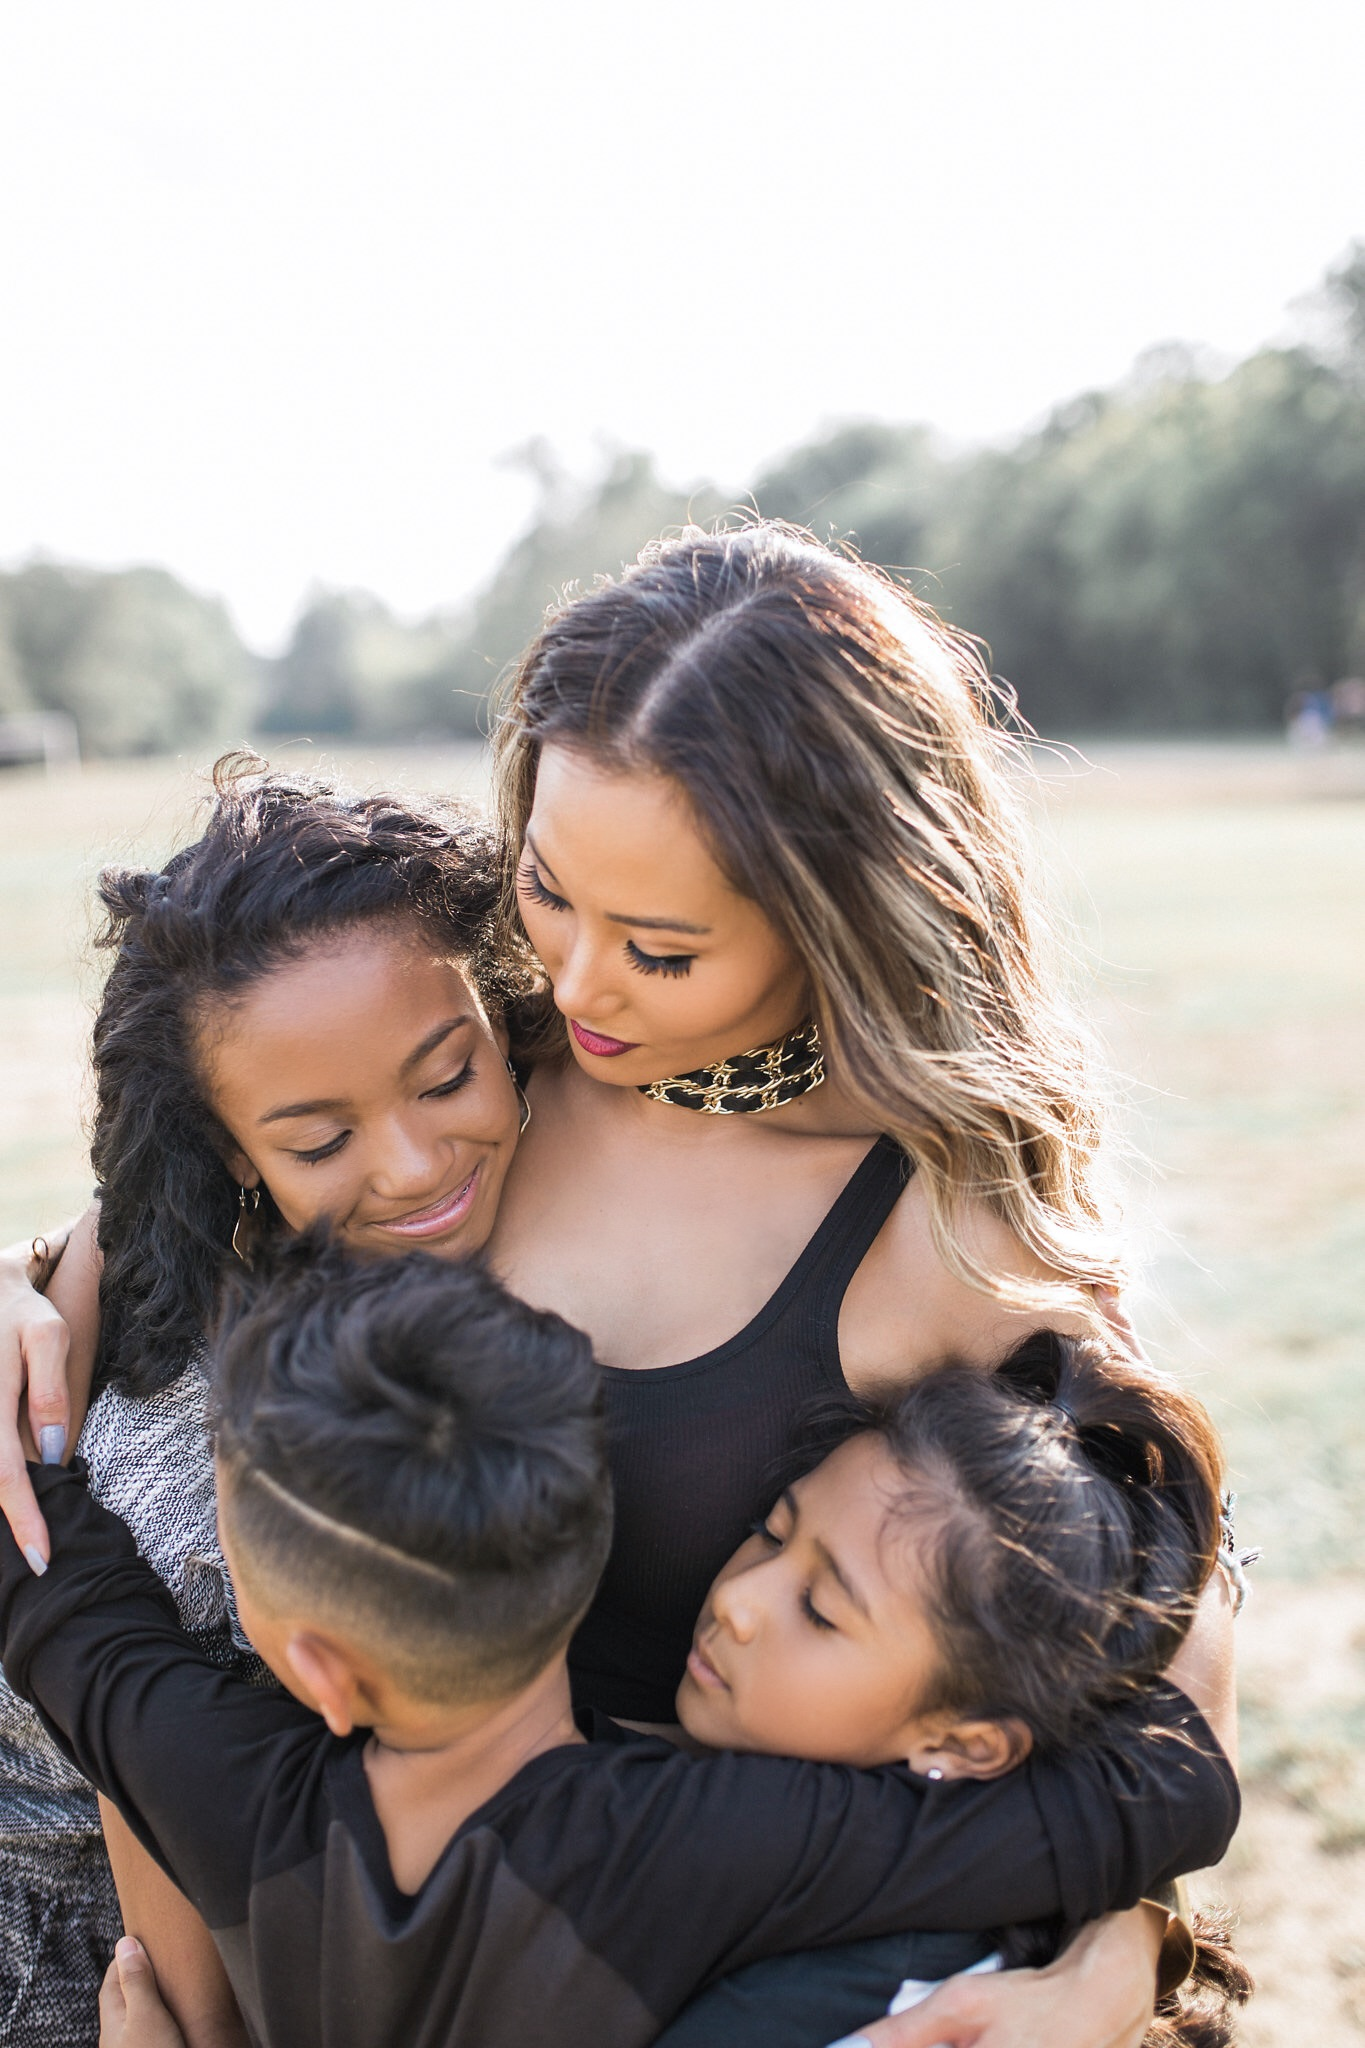 Millennial Mom of 3, Modern Style Mom, The Mommy Directory, How To Raise Millennials, Blasian Family, Biracial Family